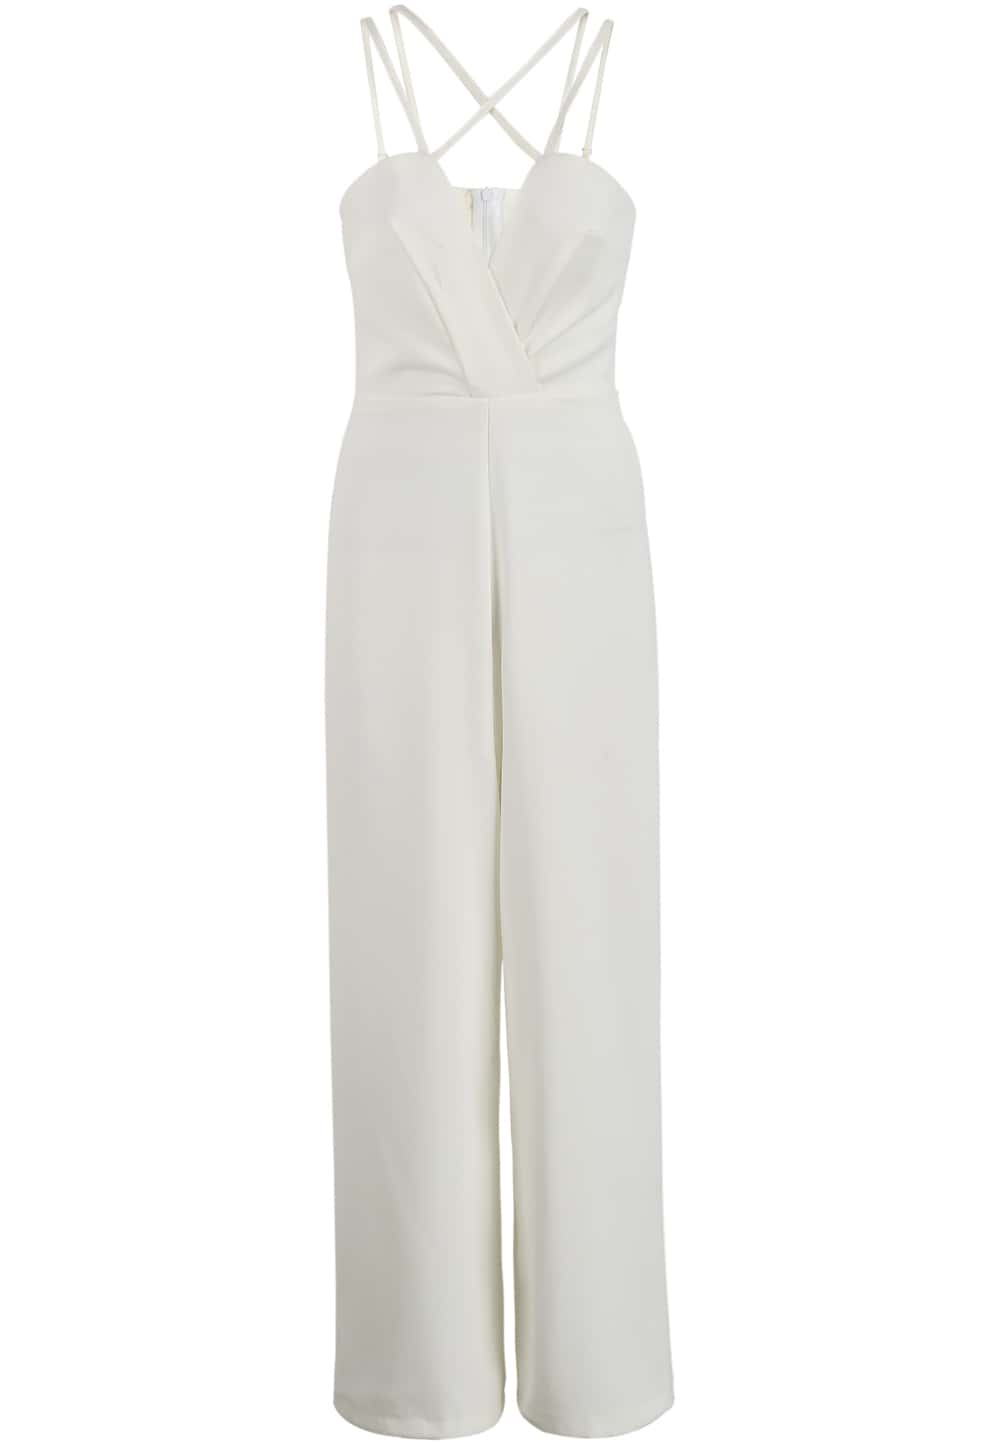 e25202e1300f White Spaghetti Strap Backless Loose Jumpsuit